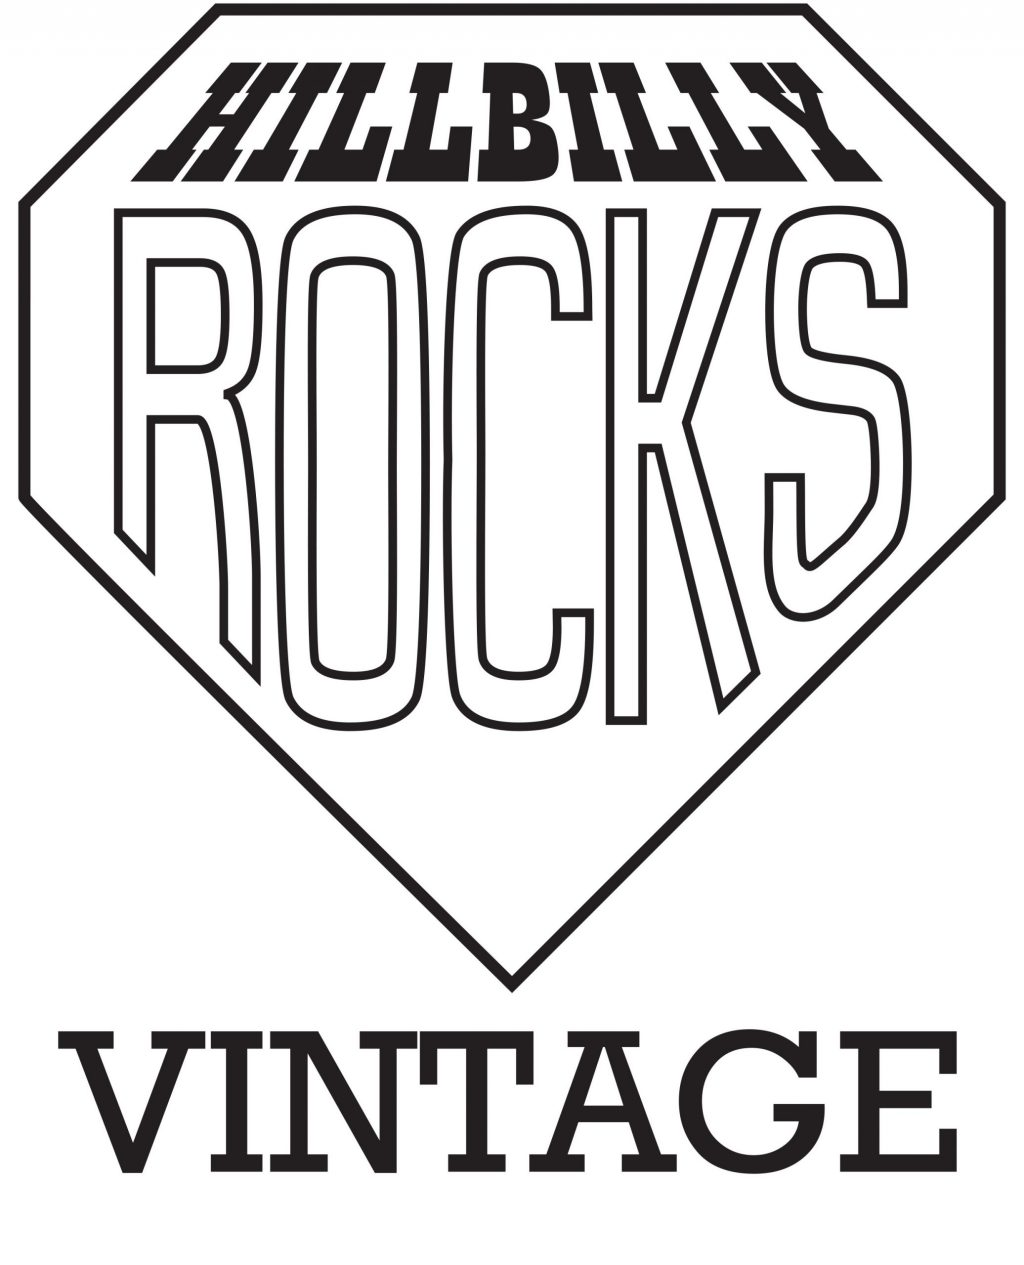 Hillbilly Rocks Vintage clothes shop logo